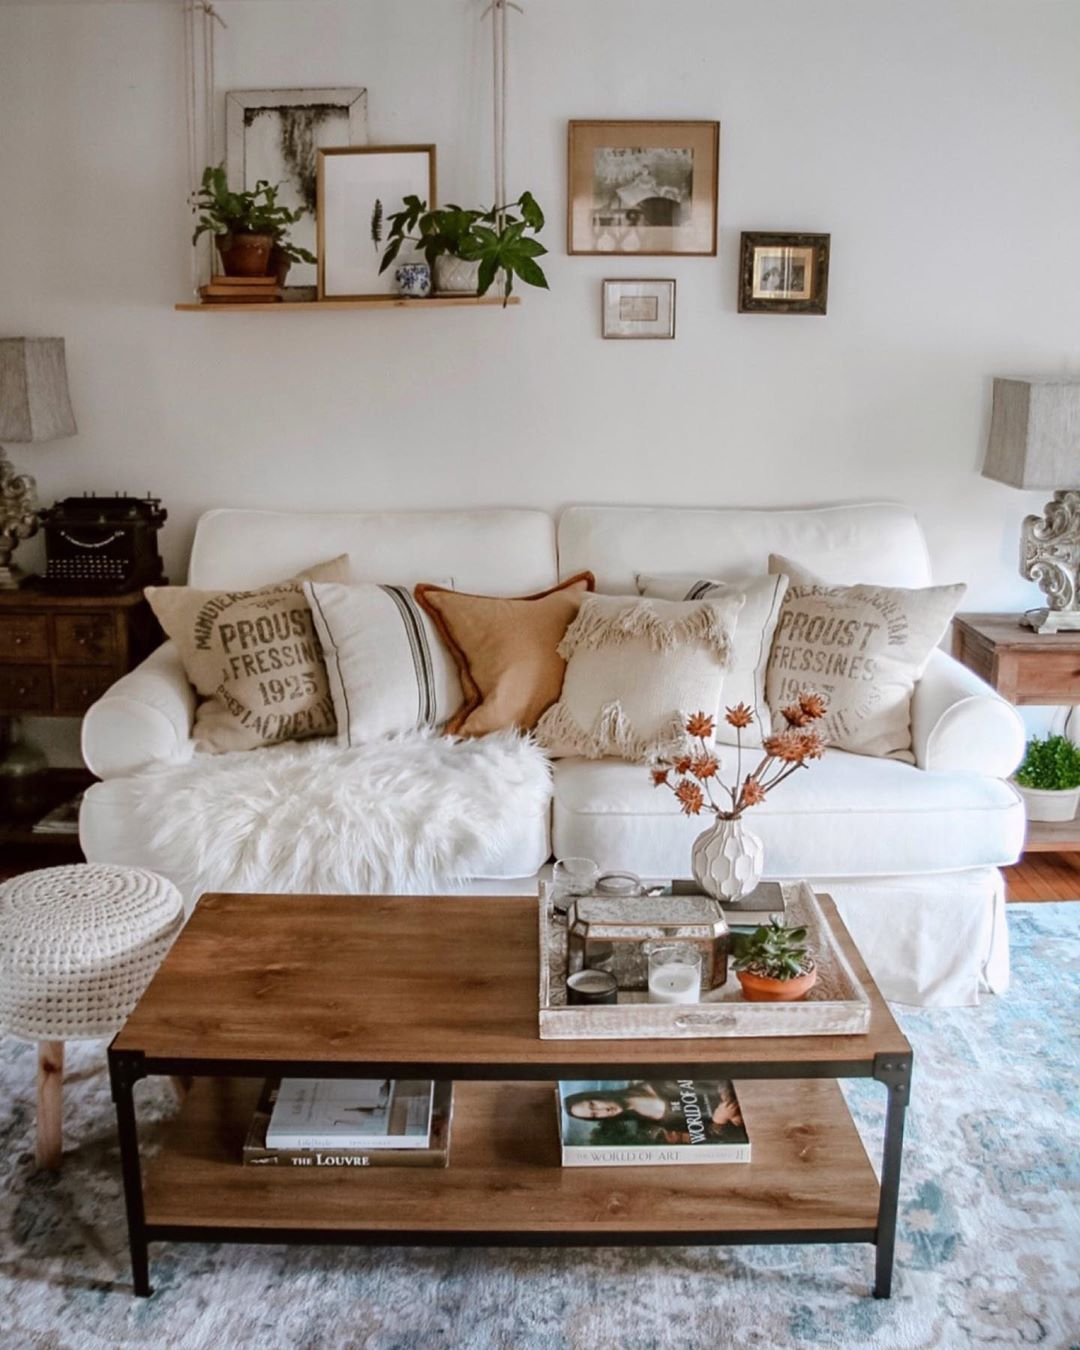 14 Really Cute College Apartment Ideas You Need To See By Sophia Lee College Apartment Living Room Living Room Decor Apartment Apartment Decorating Living